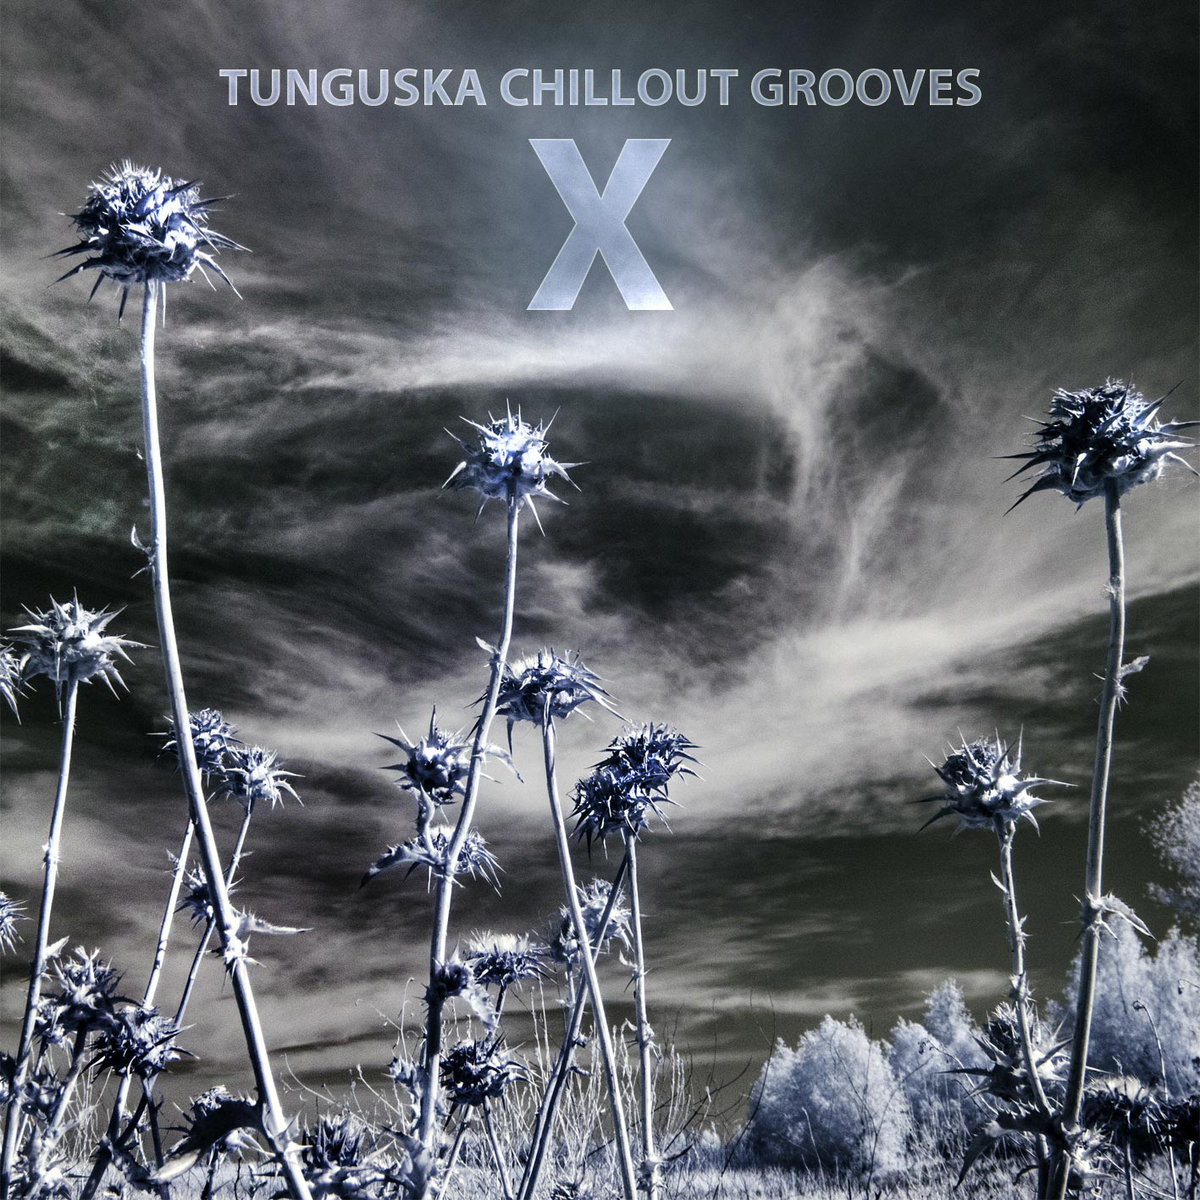 Sergey Borovkov - Big Space Journey @ 'Tunguska Chillout Grooves - Volume 10' album (electronic, ambient)